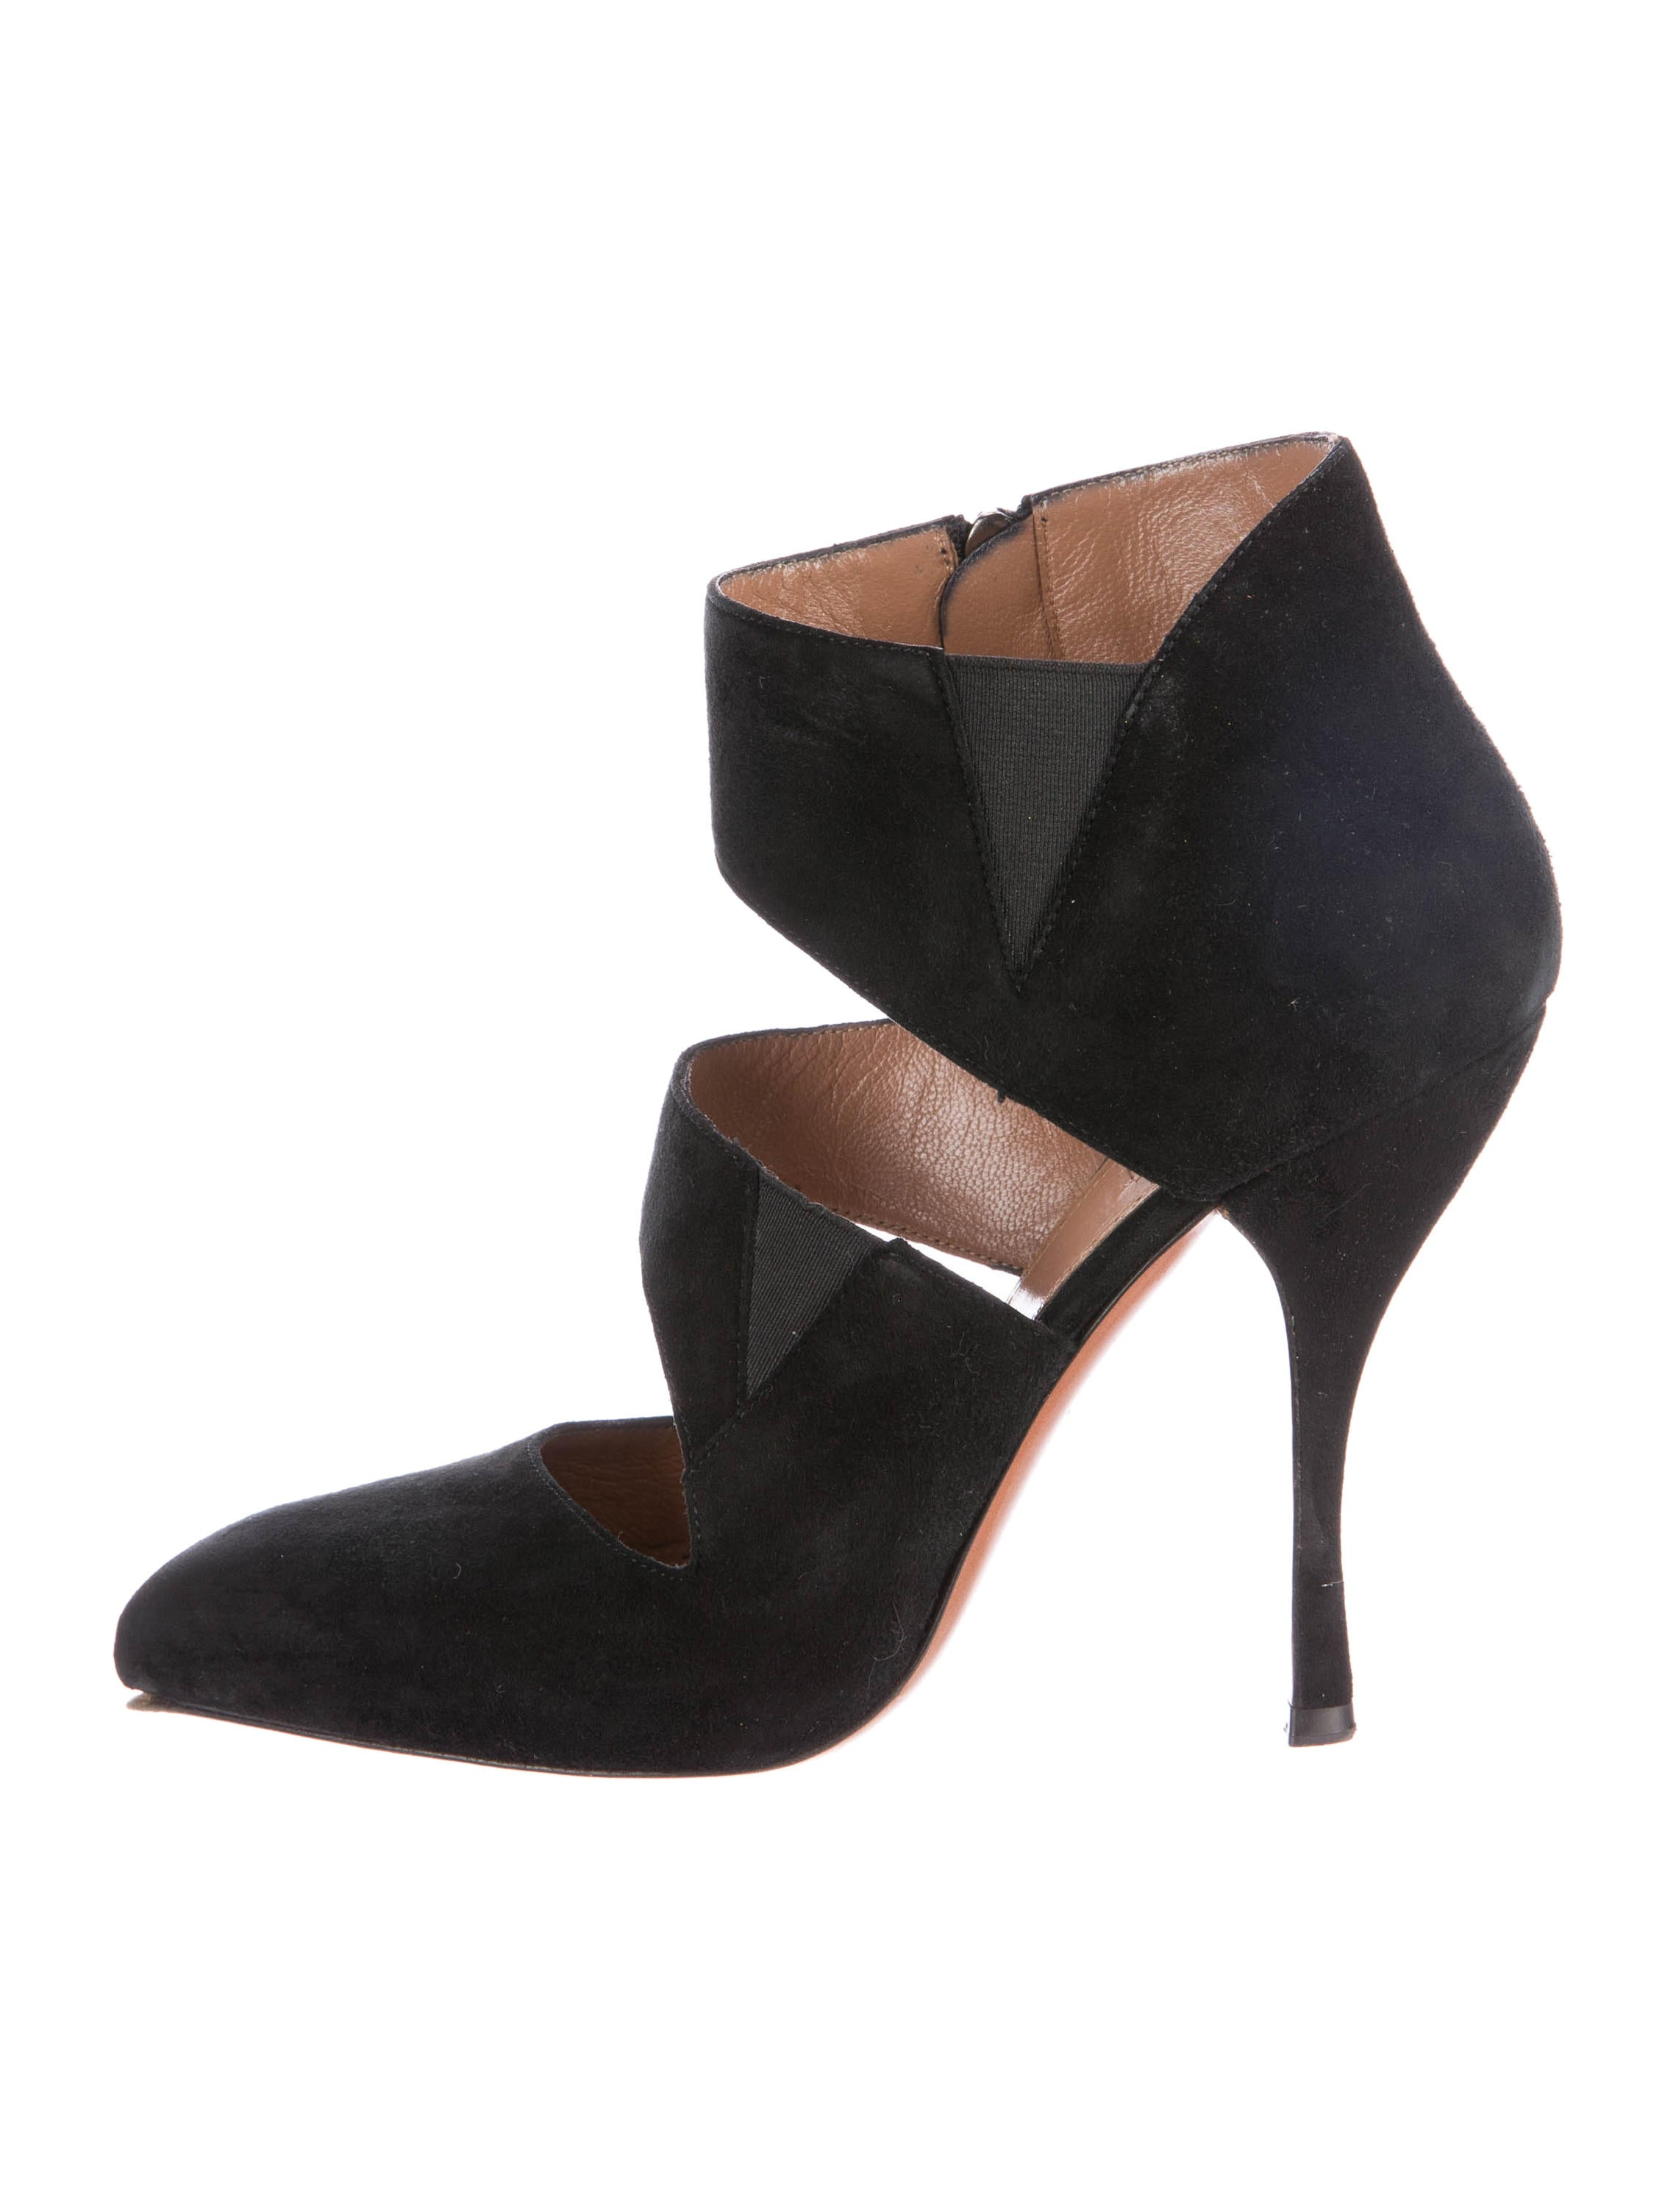 outlet sast discount professional Alaïa Pointed-Toe Leather Pumps IKz3MUQ